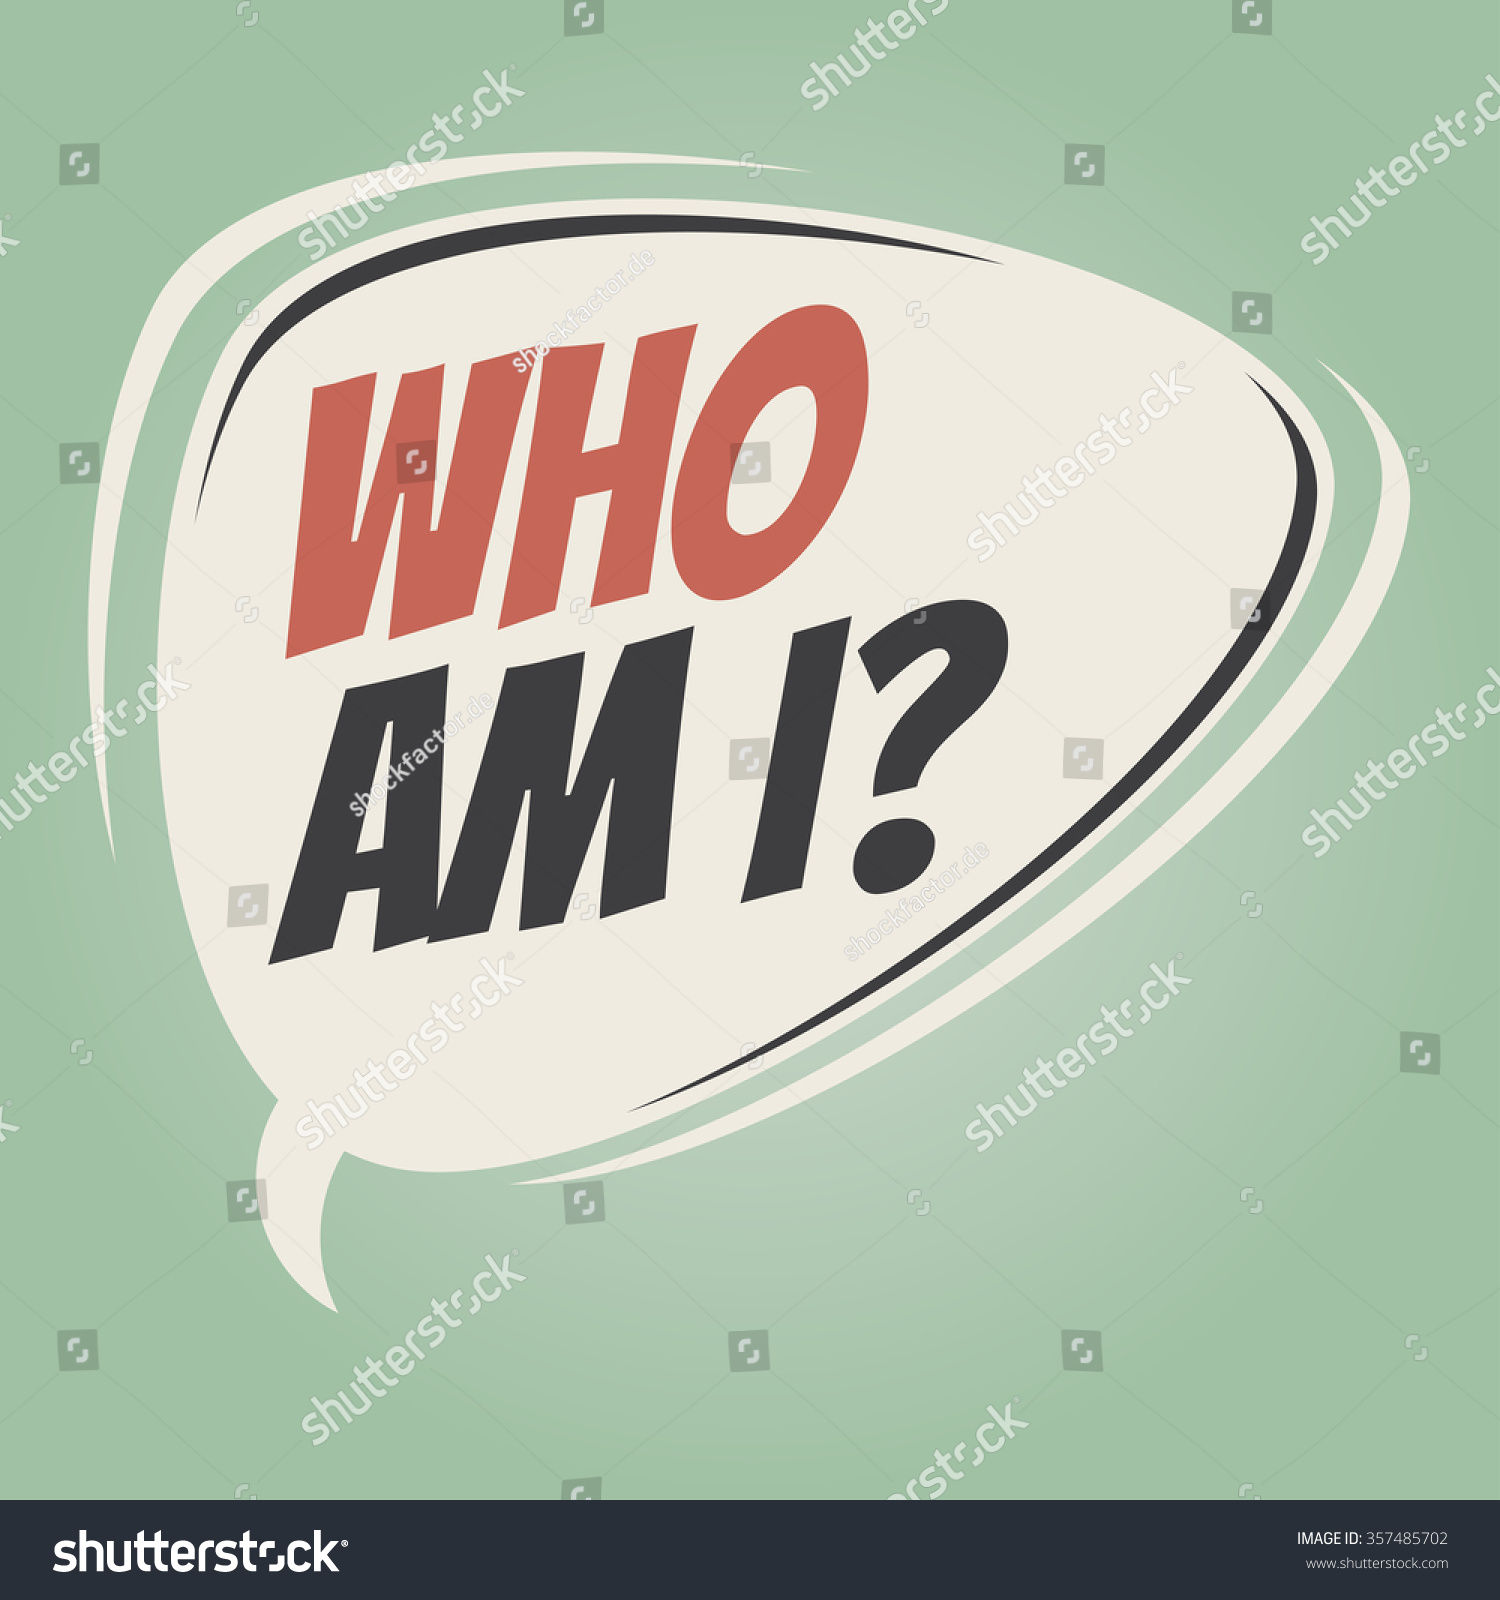 who i am speech Who am i speech due: thursday, january 10 assignment: prepare a 3-5 minute speech that tells us who you are the speech will be worth 100 points and be graded on delivery, content, organization, visual aid, and overall effect.